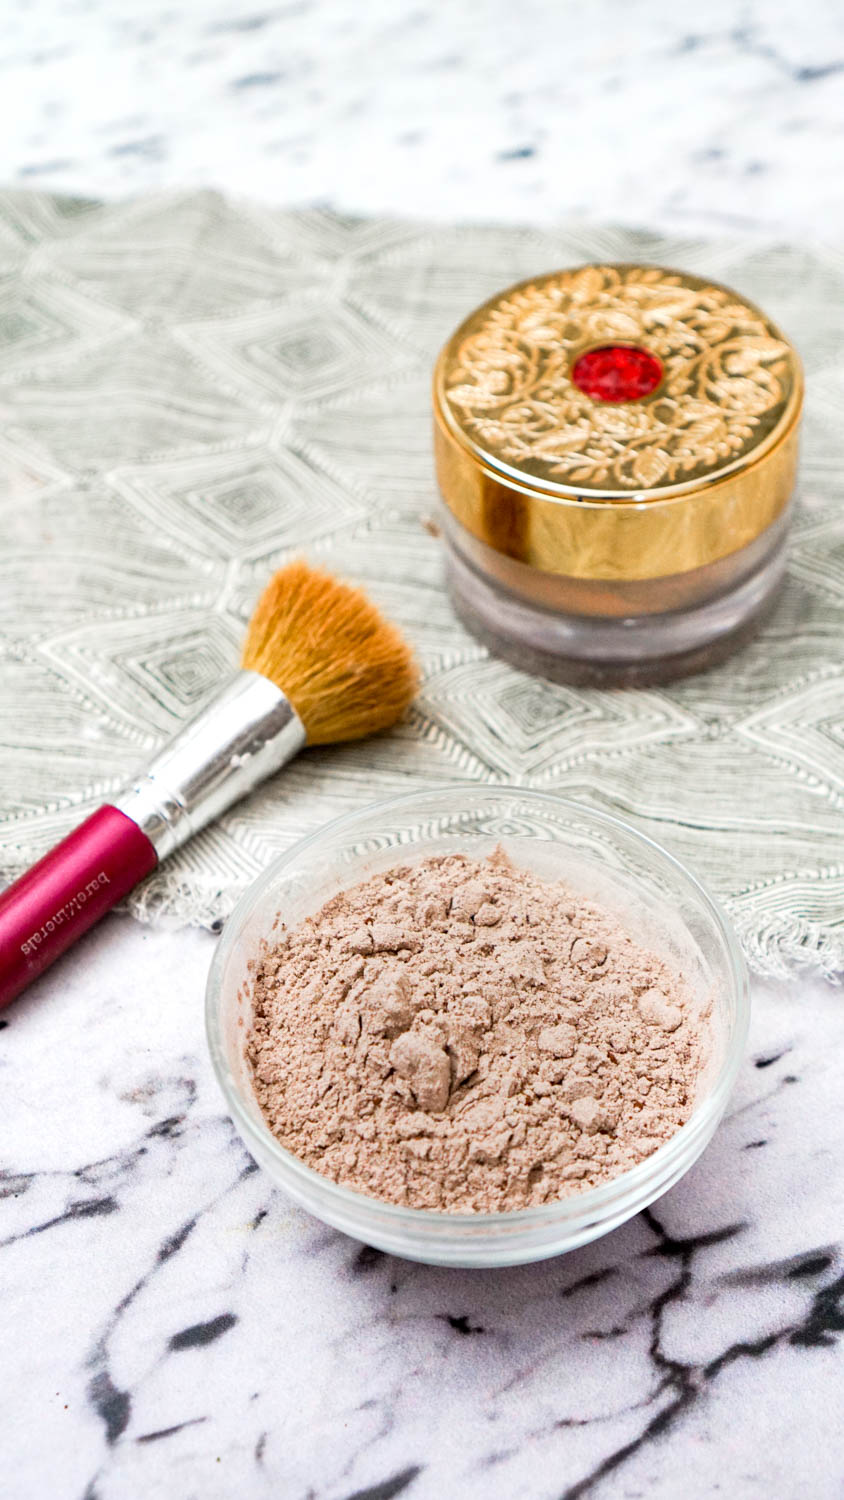 #DIY #Homemade #Zerowaste #makeup #powder #foundation from www.goingzerowaste.com